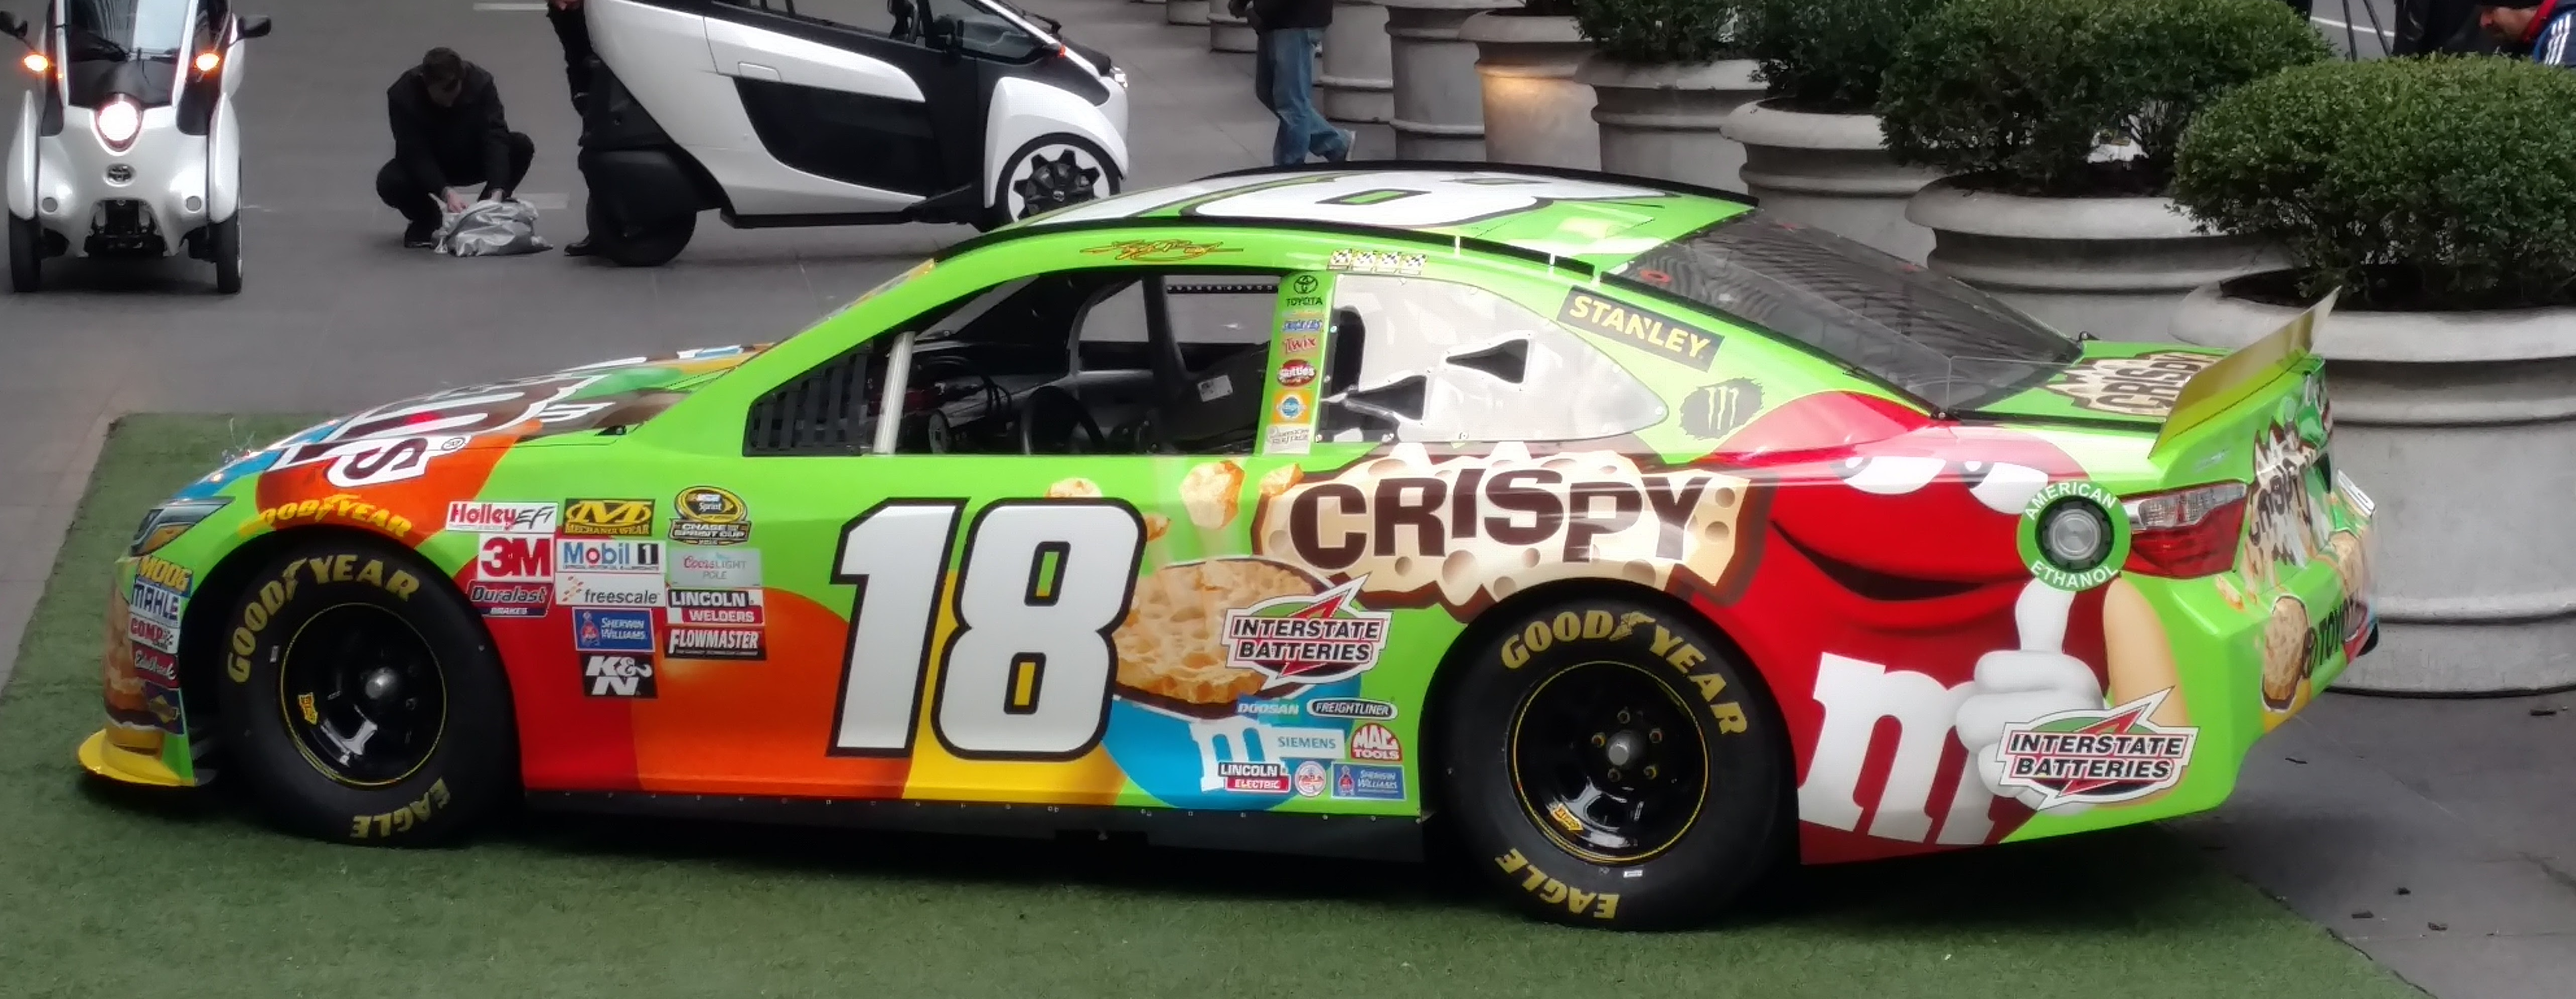 Nascar 2016 aviously - Pictures of kyle busch s car ...